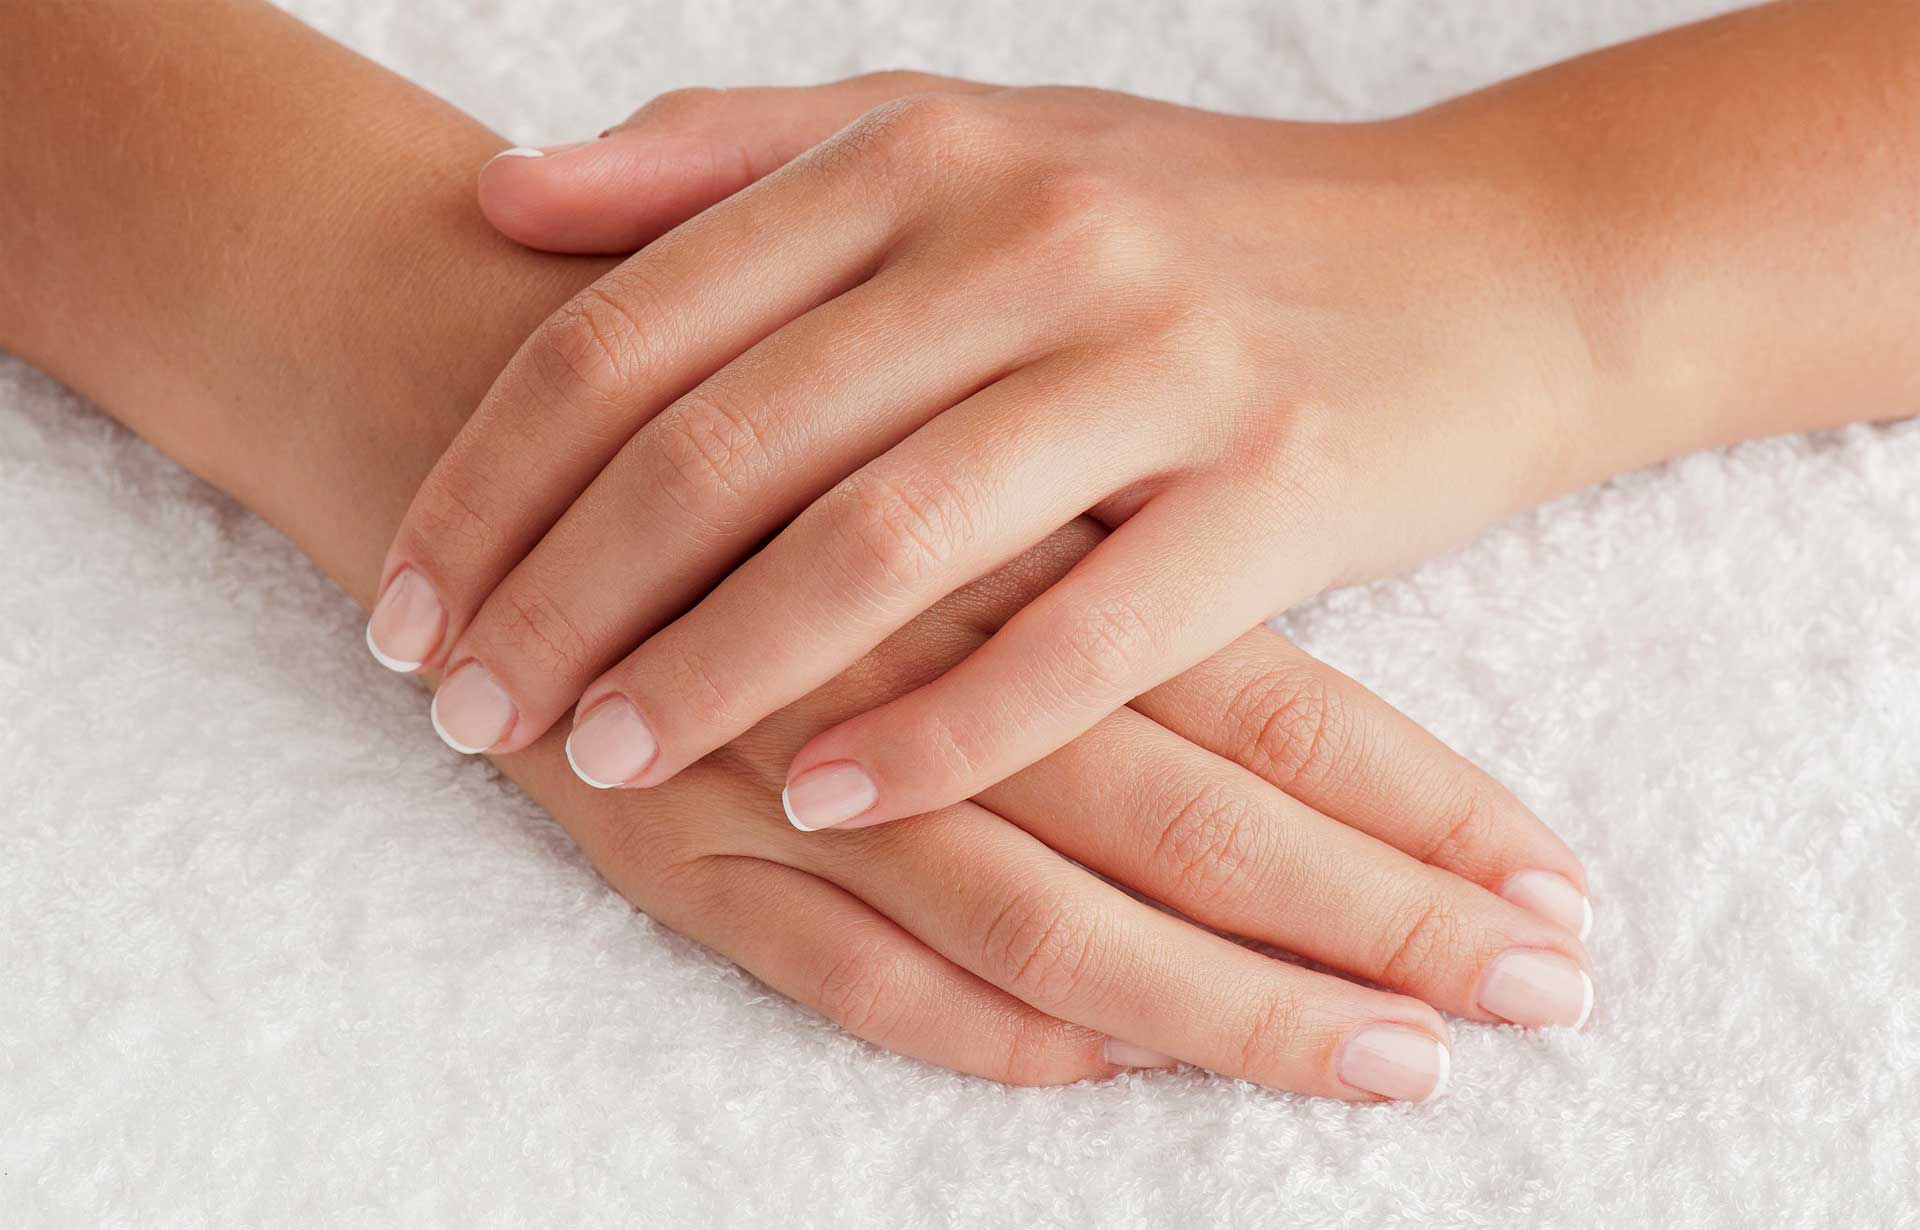 Beautiful-Hands-And-Feet-With-Baking-Soda